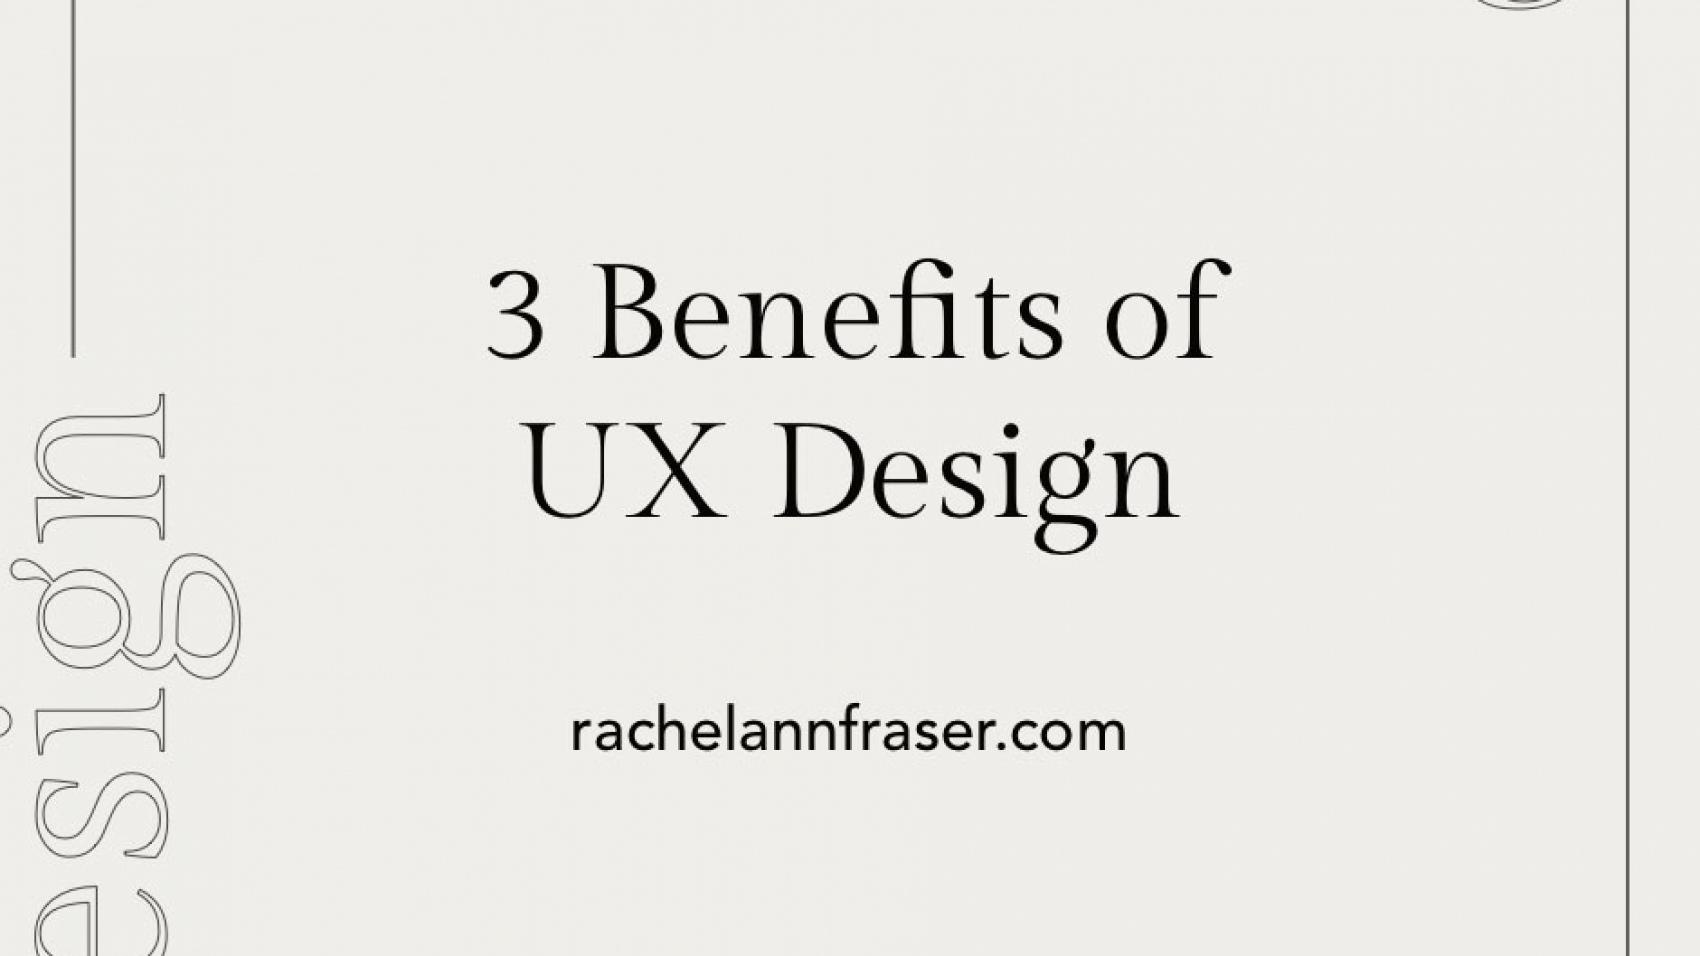 Benefits of UX Design